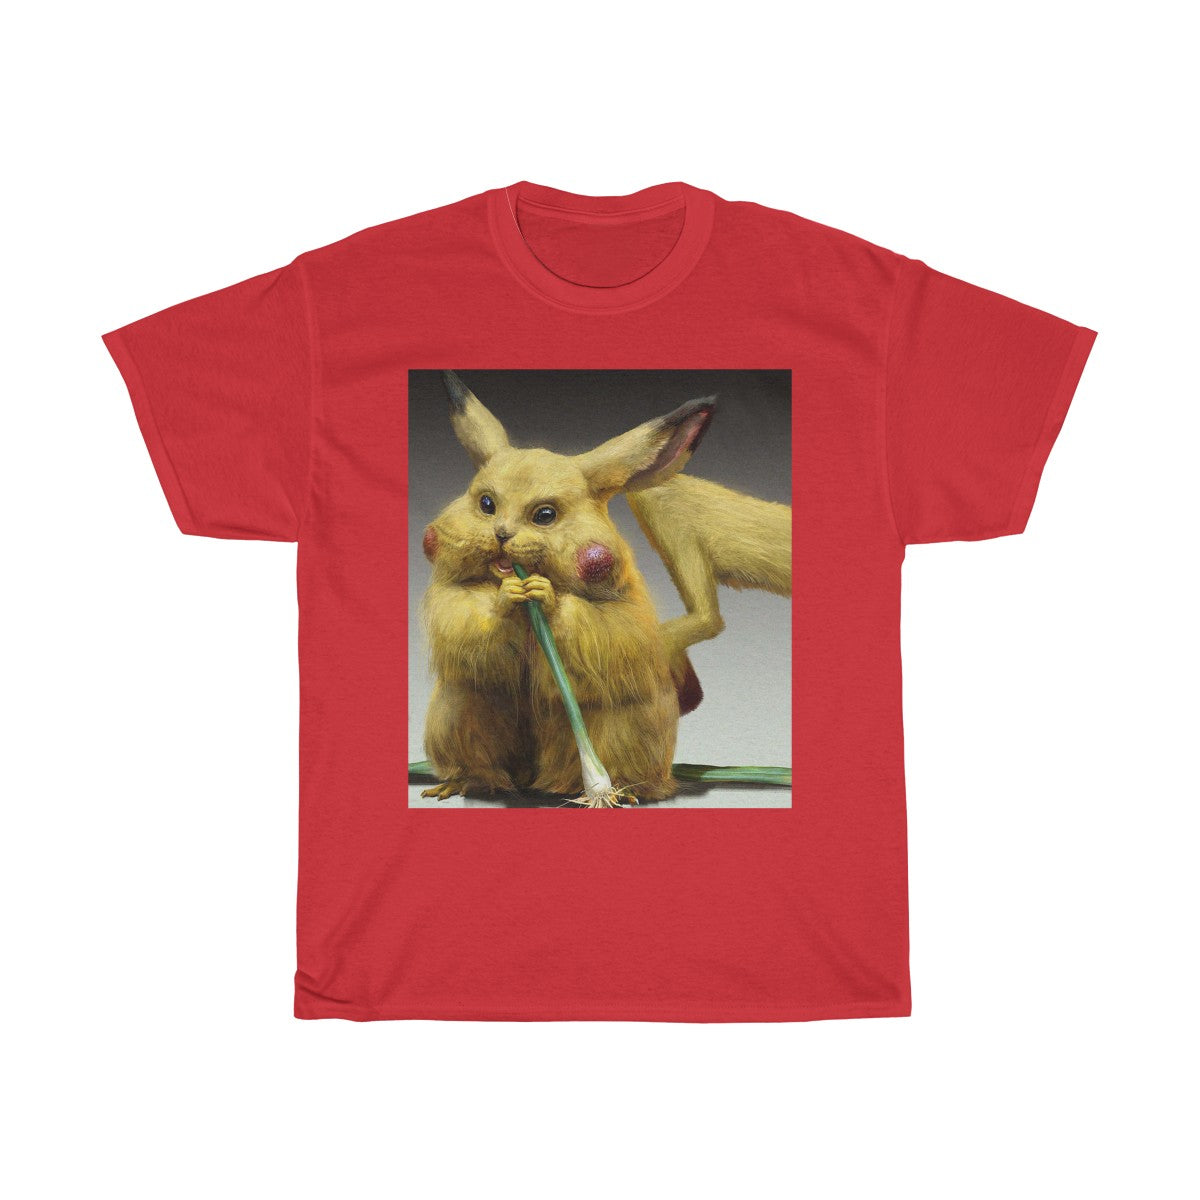 Unisex T-shirt Pokemon